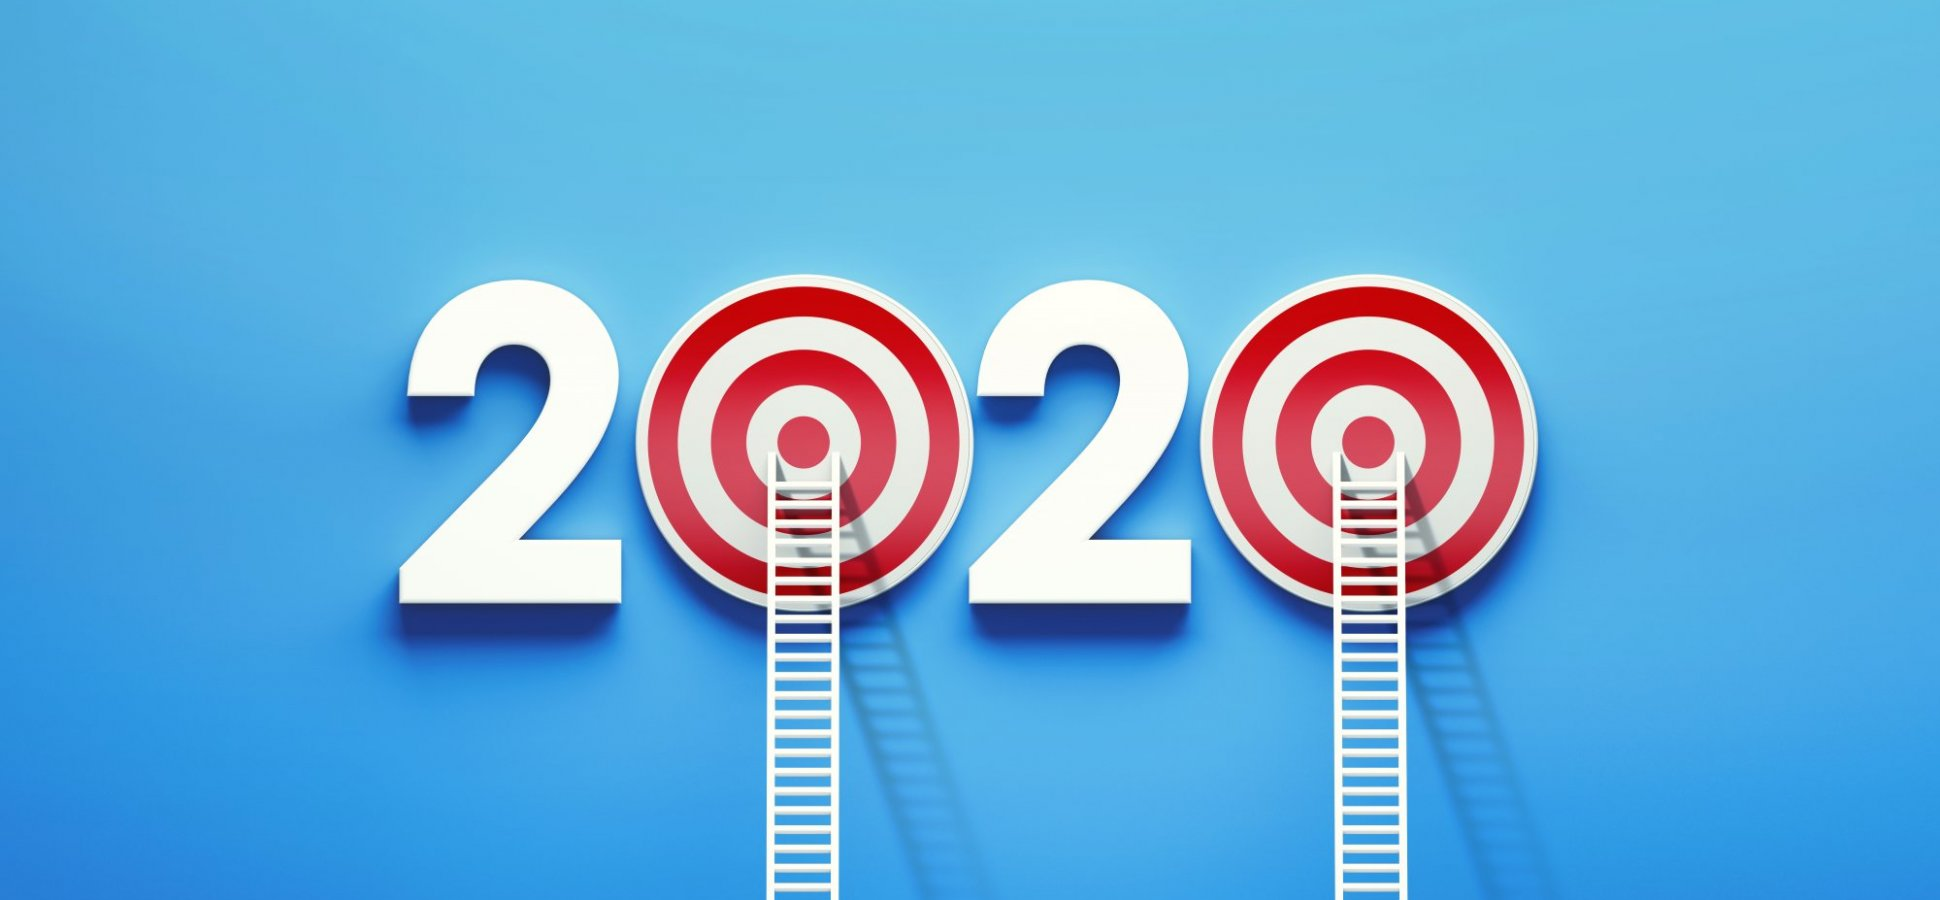 4 NewTrends in Leadership to Watch in 2020